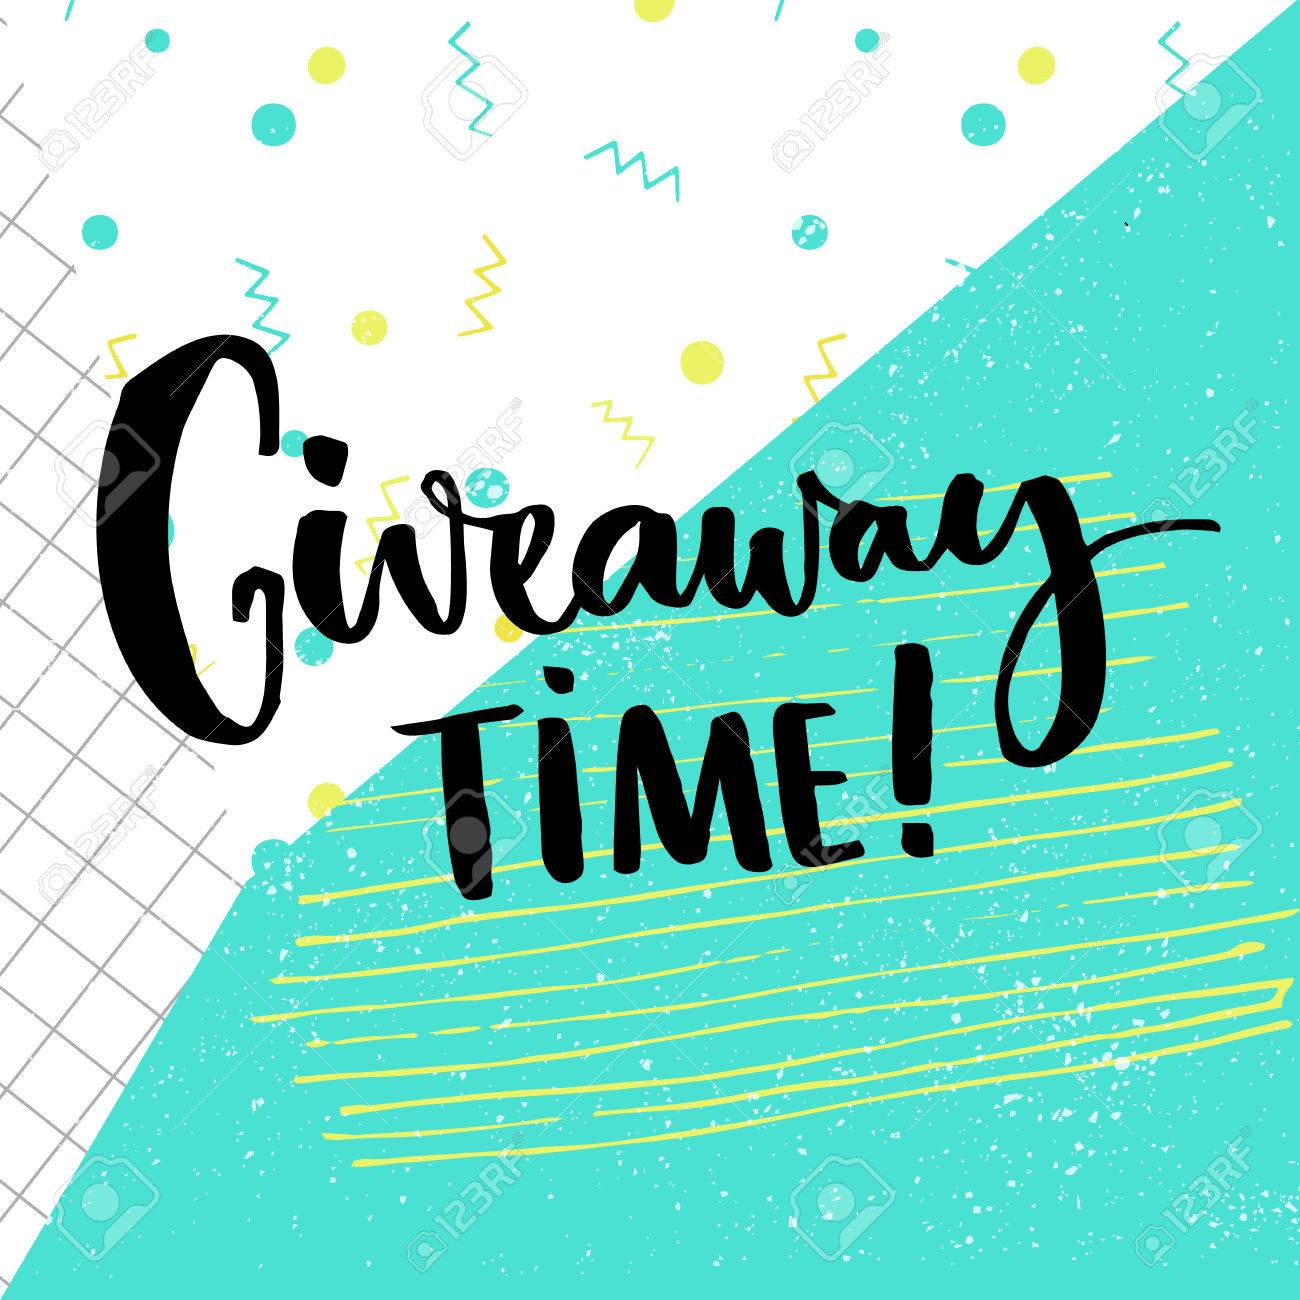 giveaway time text for social media contest brush calligraphy